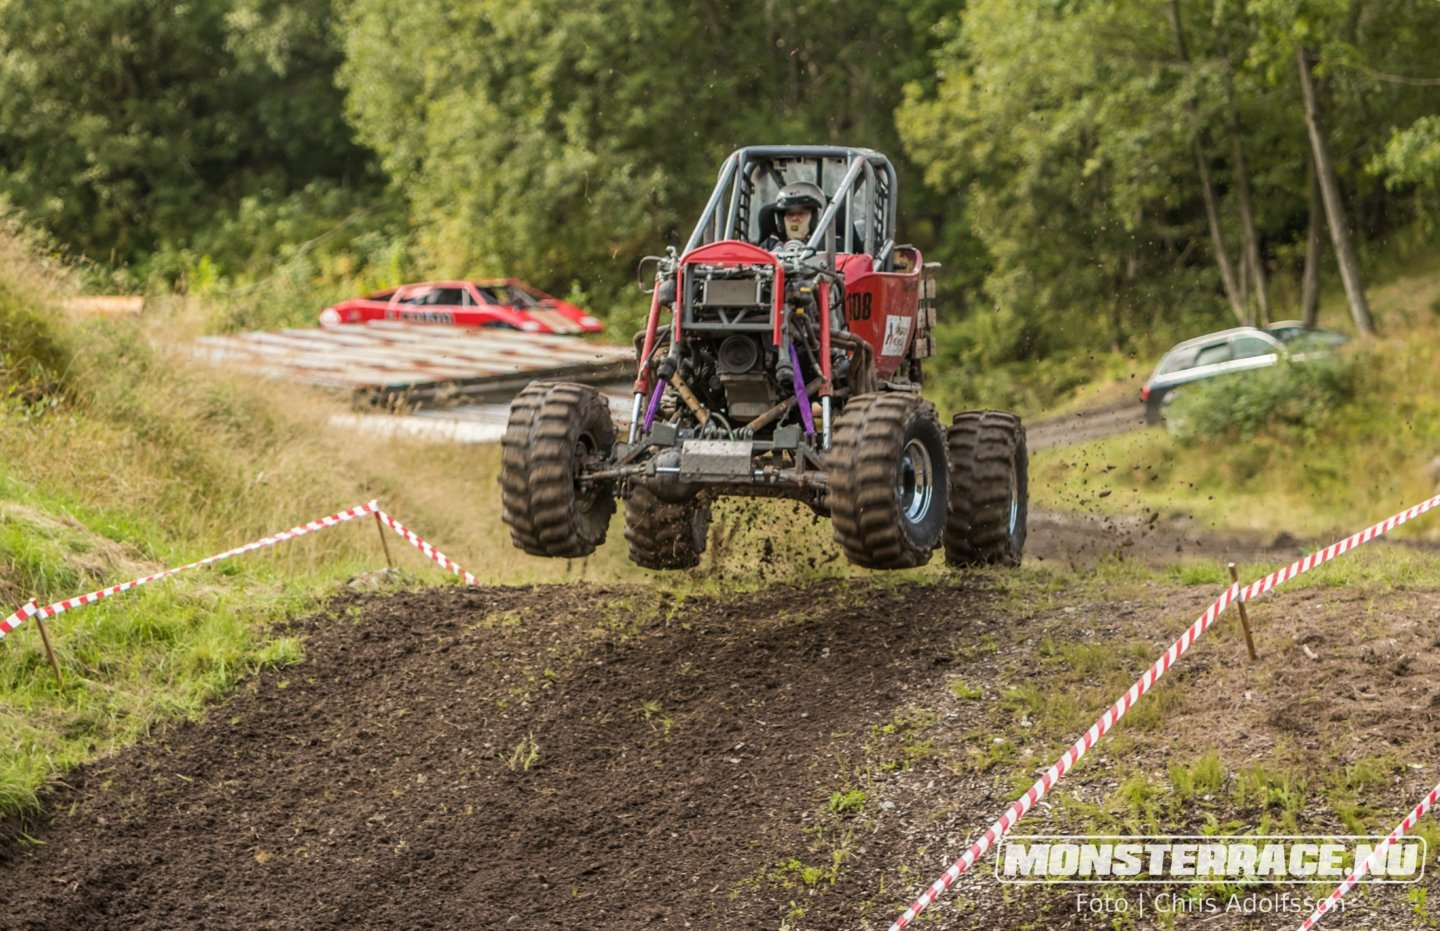 Monsterrace Ed dag 1 (122)